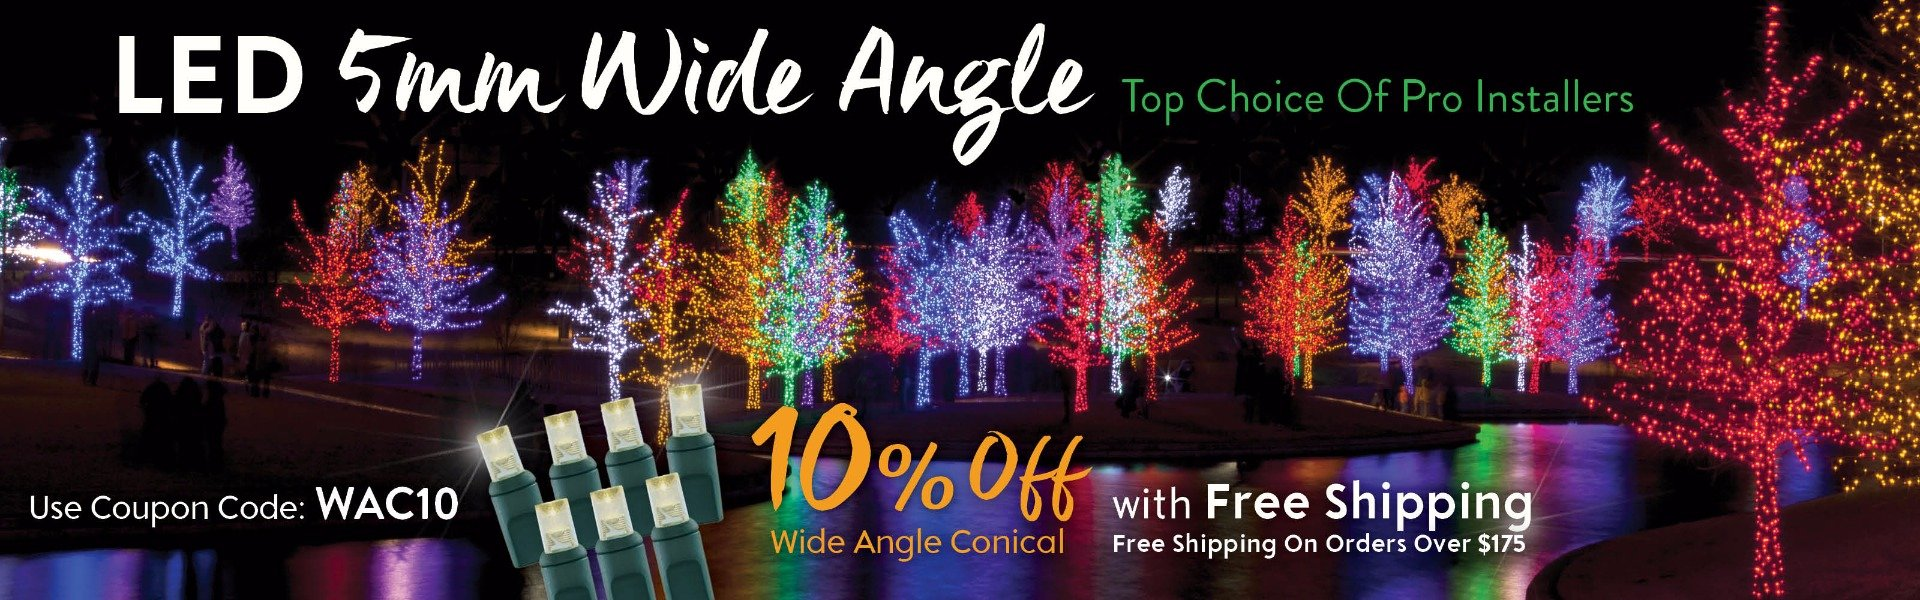 LED 5mm Wide Angle. Top Choice of Pro Installers. 10% off of Wide Angle Conical. Free shipping over $175